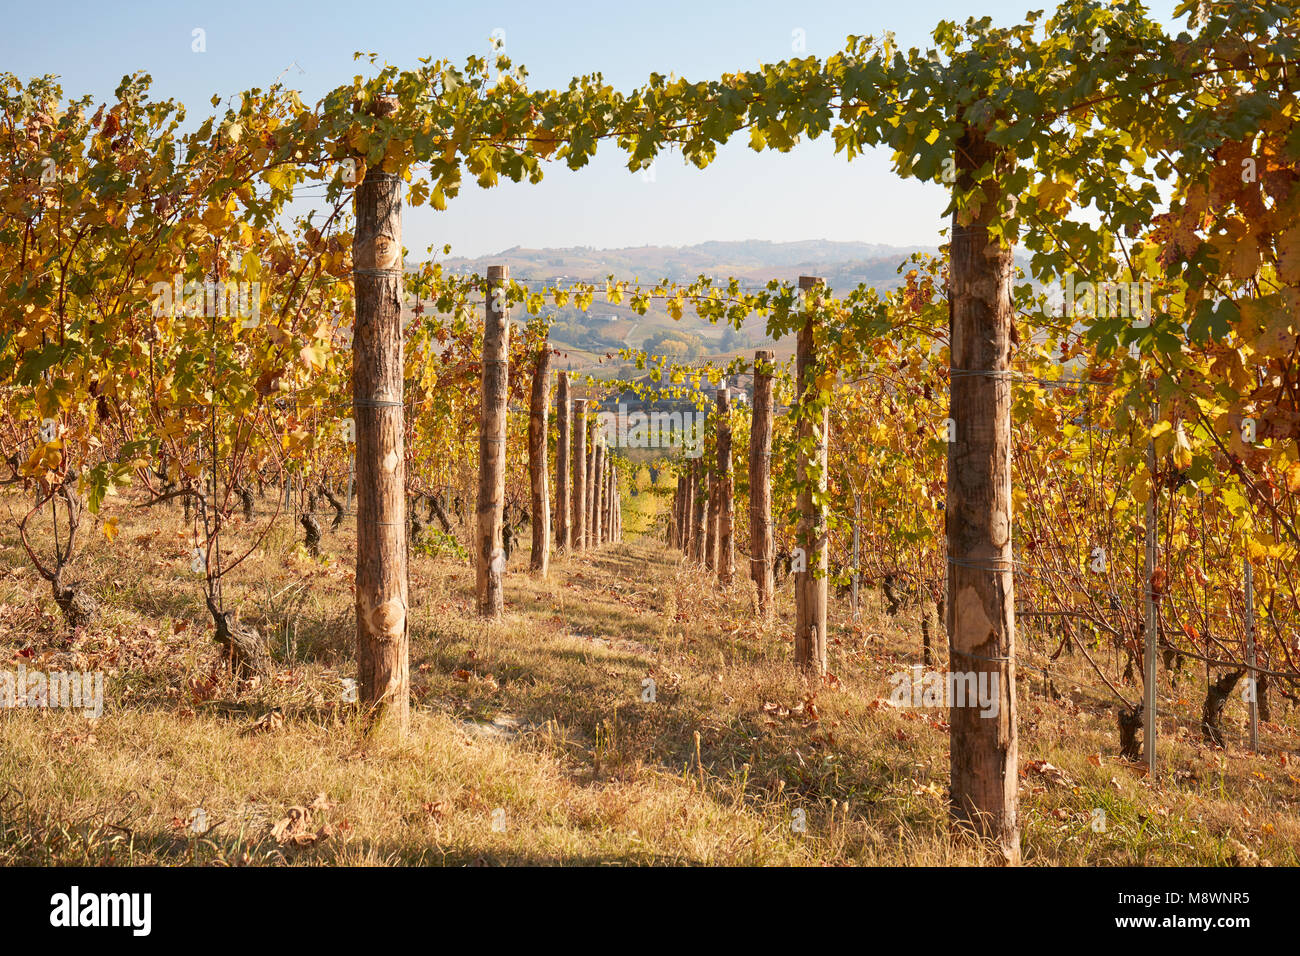 Vineyard in autumn, vine rows with wooden poles in a sunny day, vanishing point - Stock Image